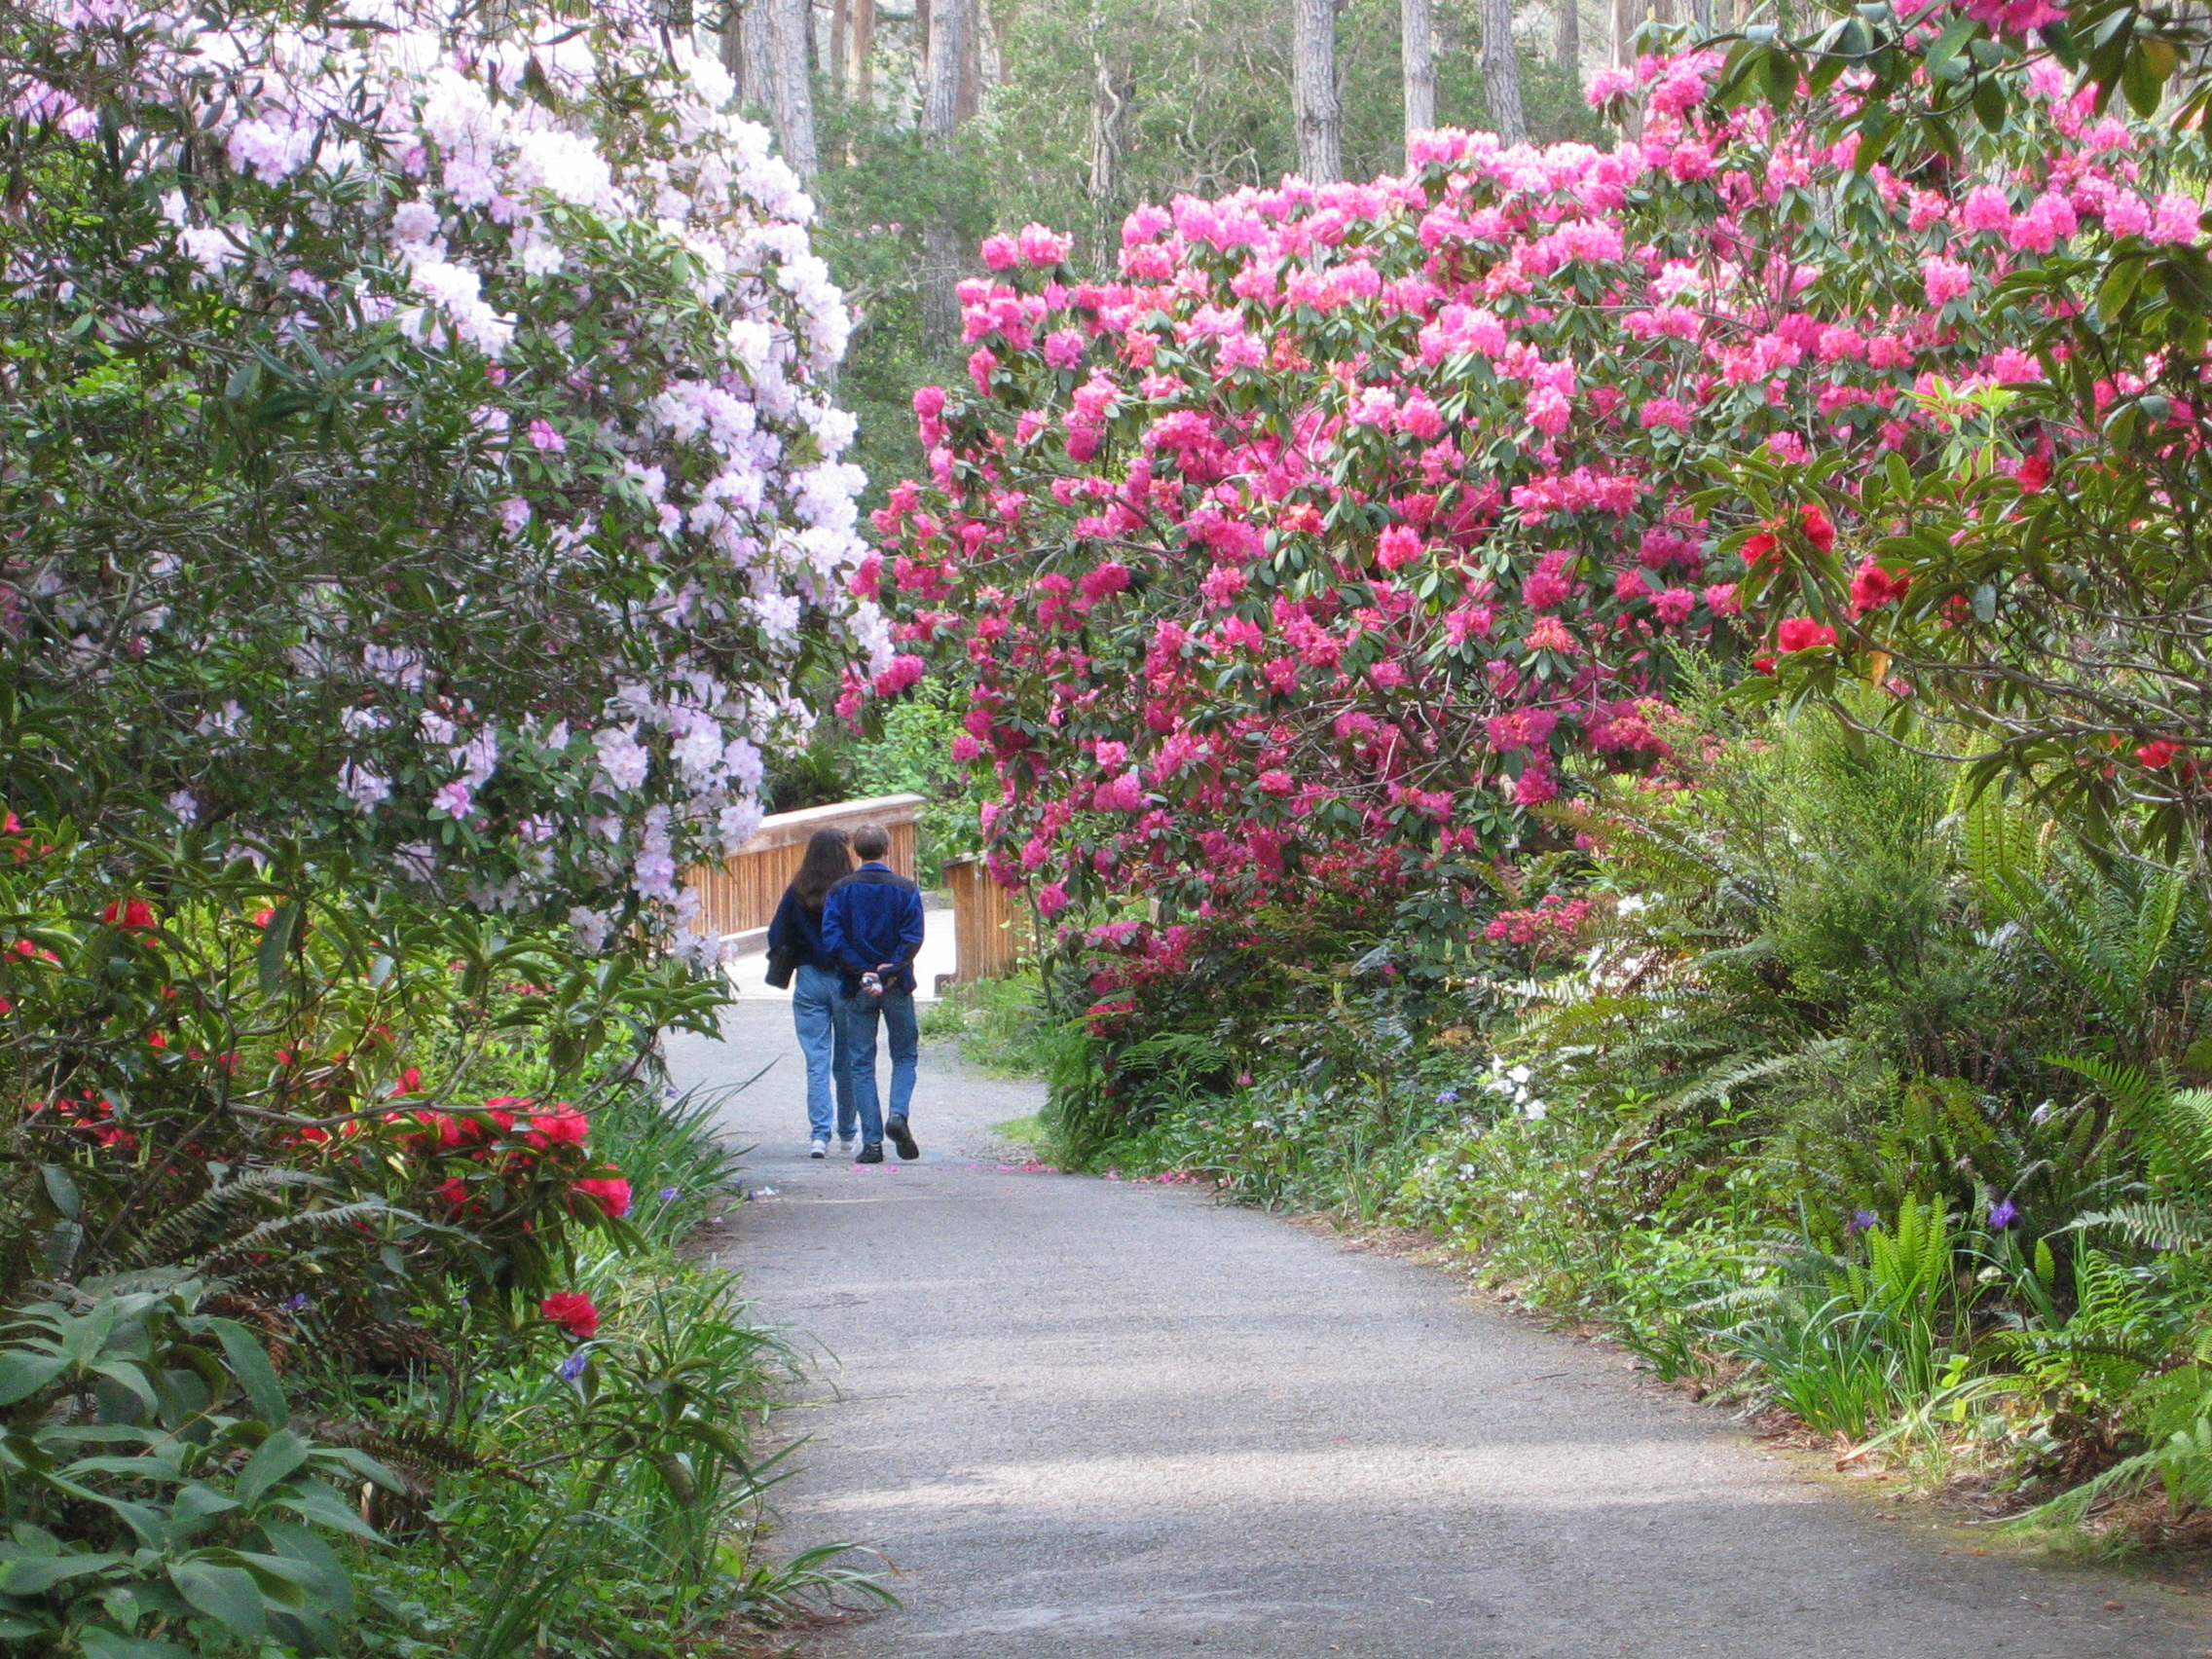 Second Saturday Rhododendron Walks   Ongoing Activities   MCBG Inc. 2018 | Fort  Bragg, California